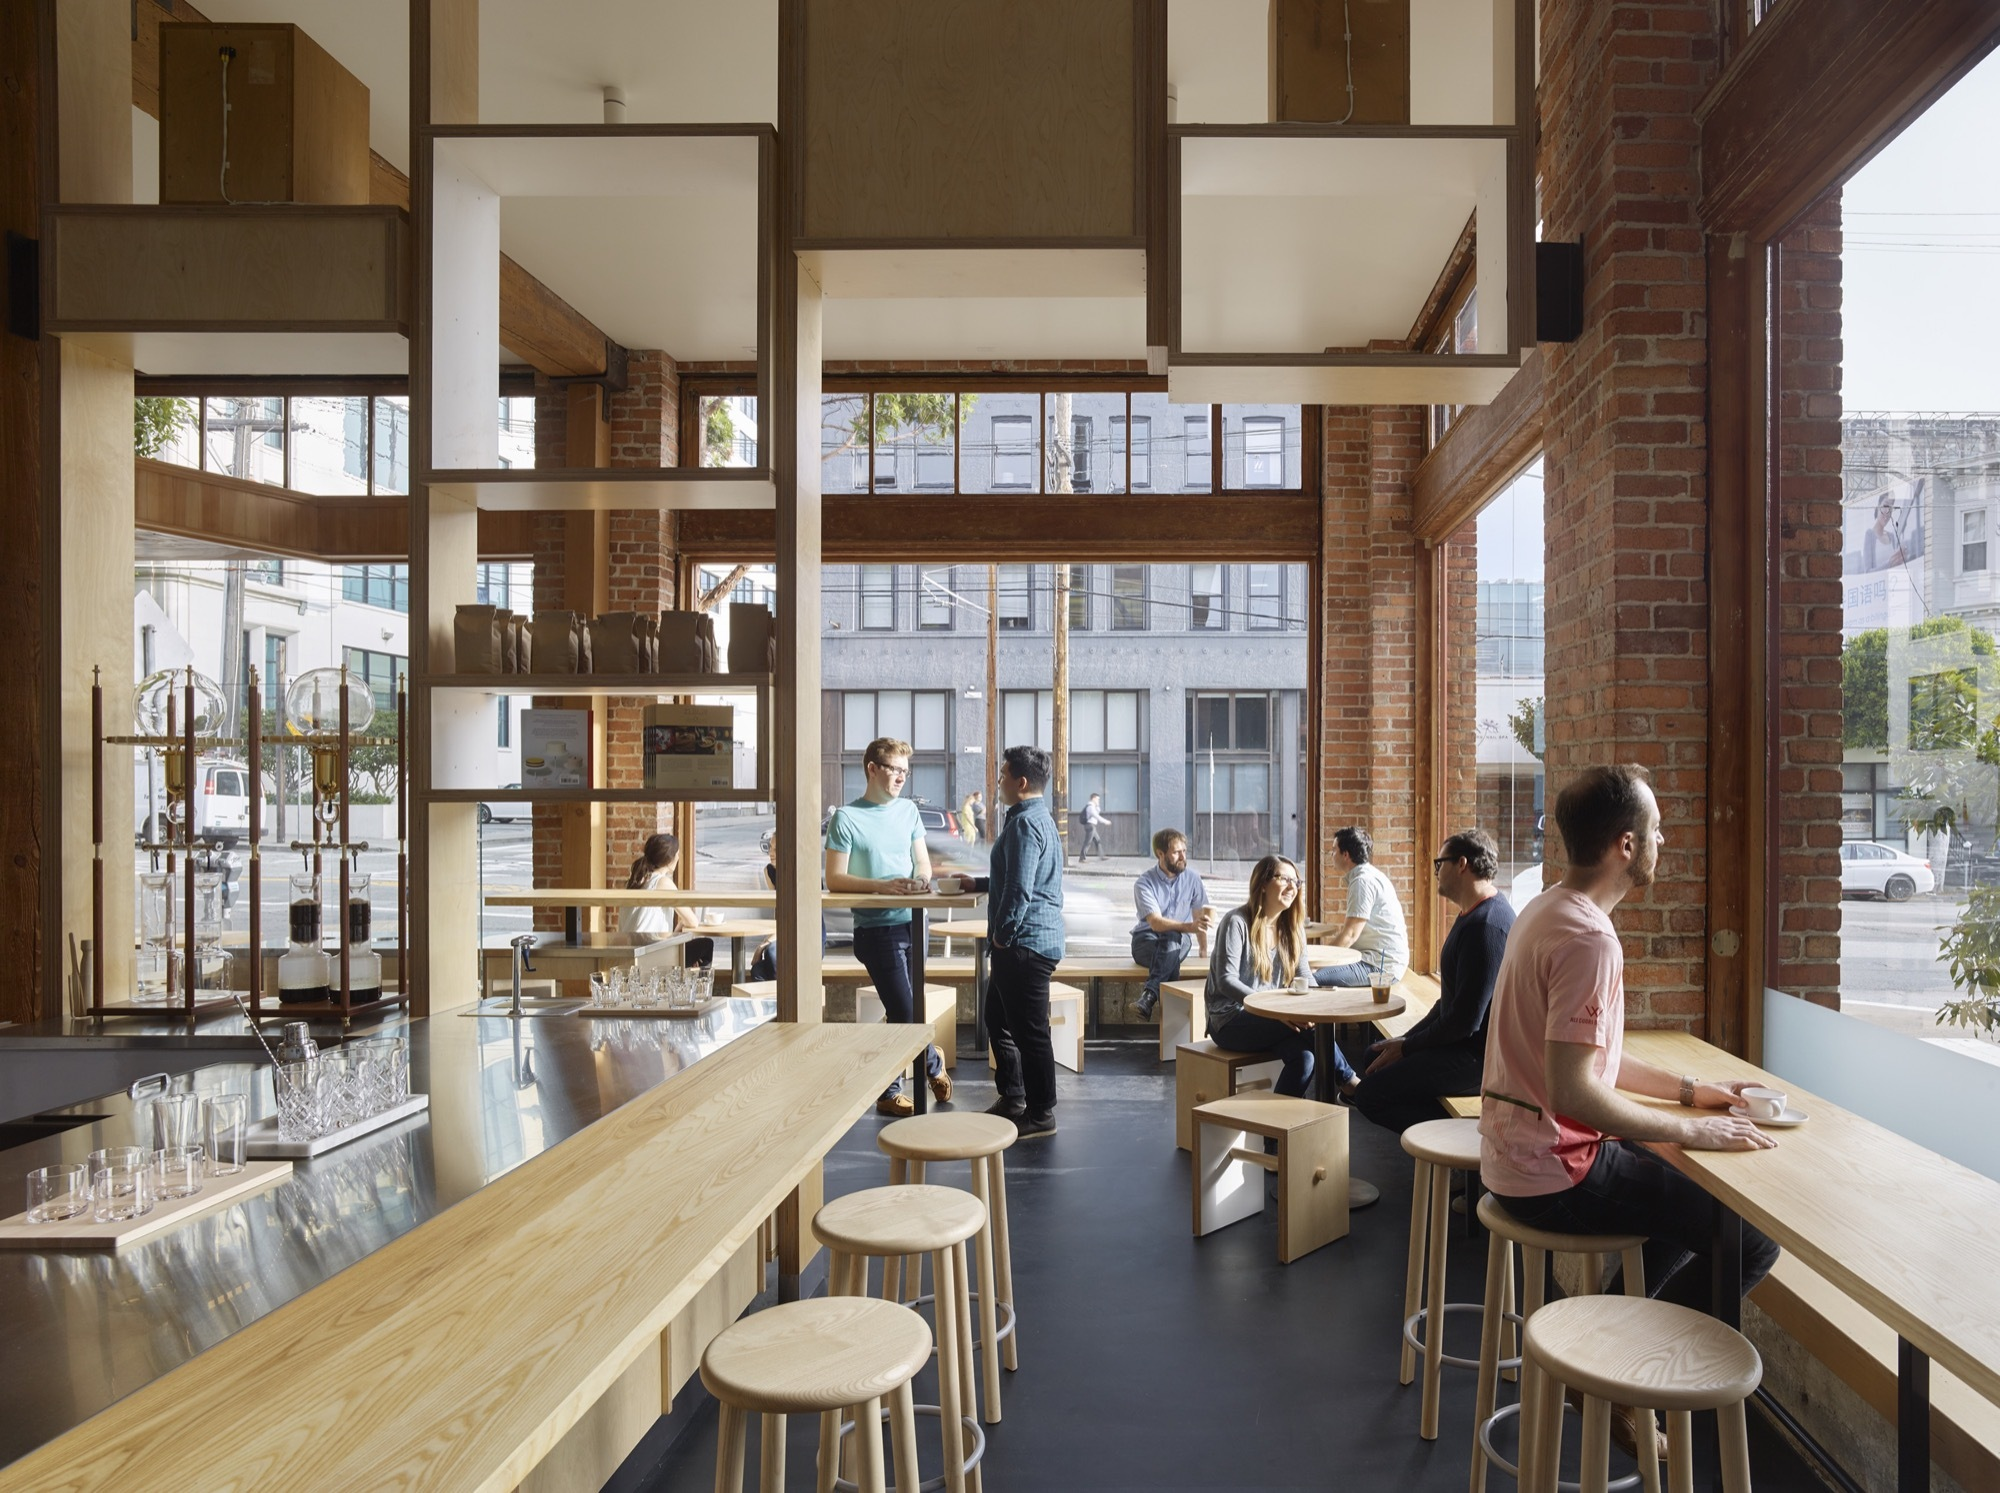 Series-of-flating-wooden-boxes-gives-teh-interior-a-whimsical-appeal